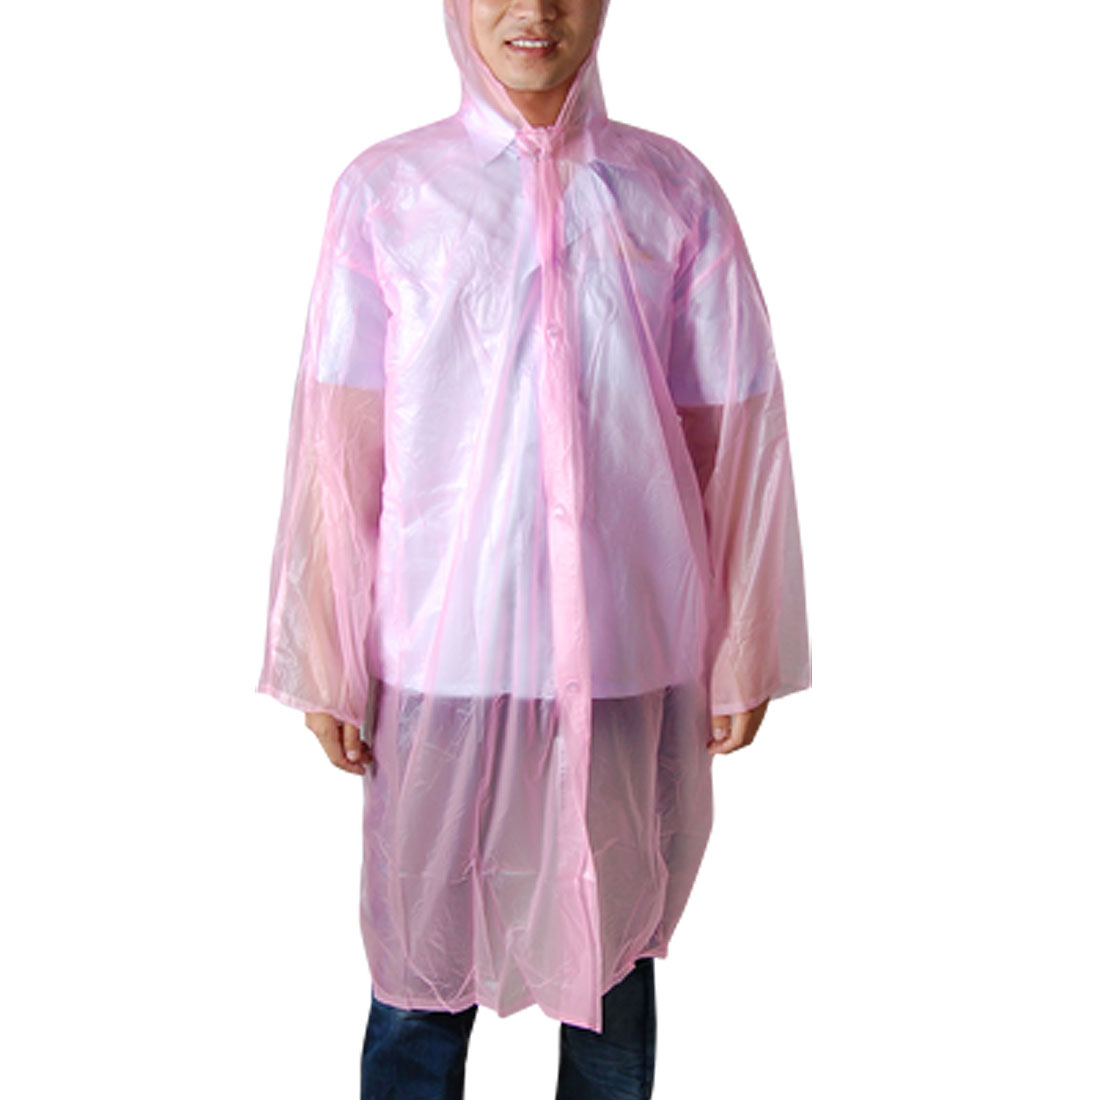 Long Sleeve Style Pink Plastic Hooded Raincoat Poncho 42.8""